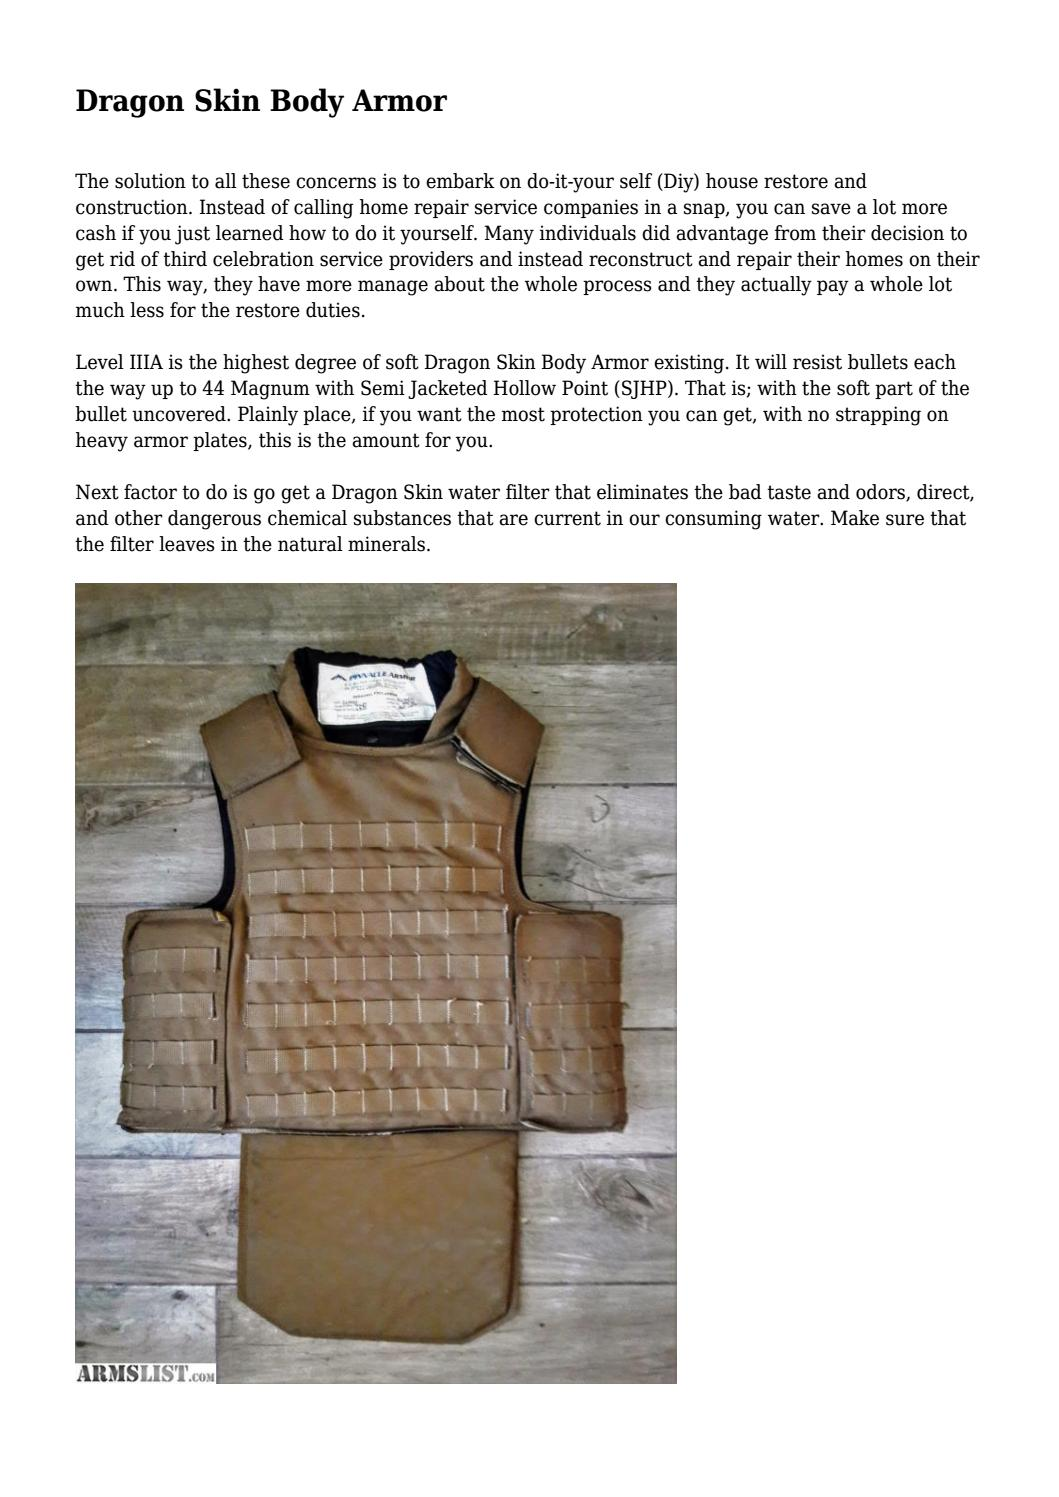 Dragon Skin Body Armor By Brandonhoward748 Issuu 3 what is dragon skin armor? dragon skin body armor by